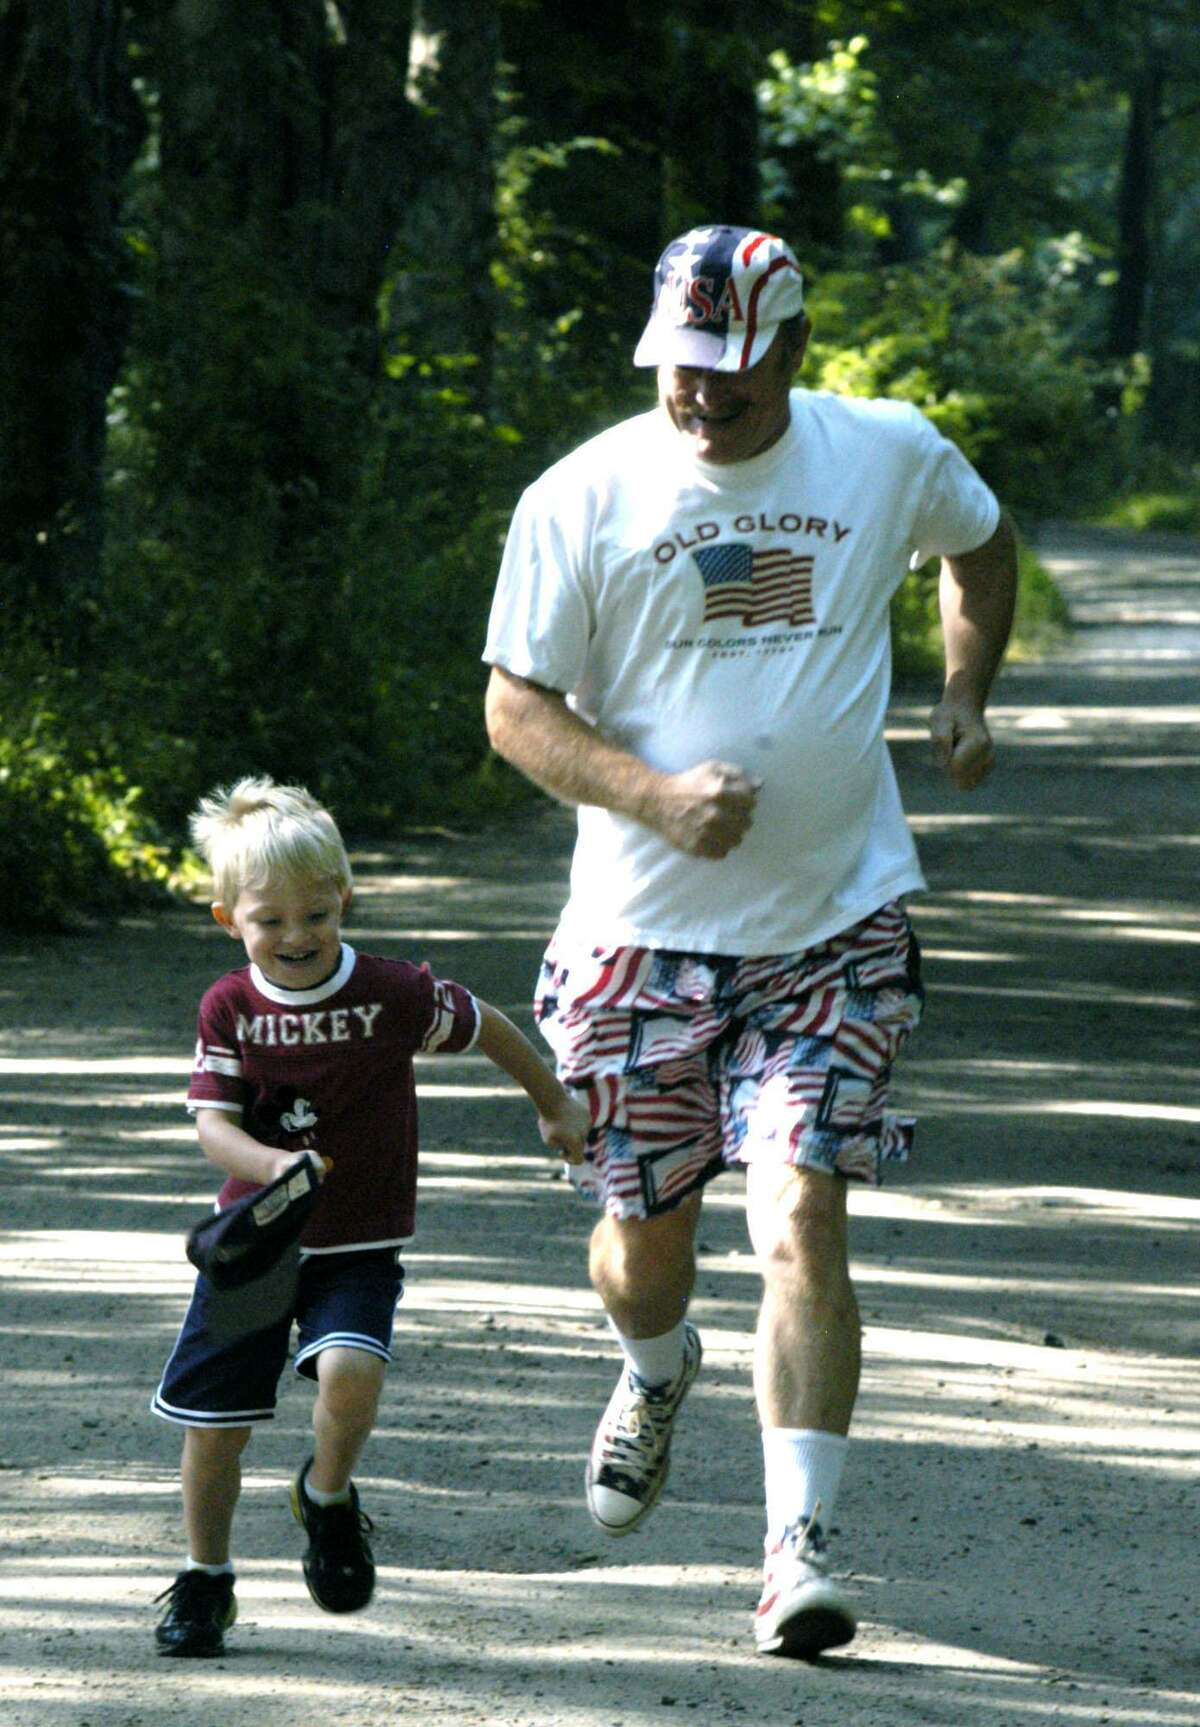 Former First Selectman Mark Lyon is shown in this 2012 photograph doing his best to match strides with his grandson Travis Lipinsky during the 2012 Stephen Reich 5K Freedom Run at Steep Rock Reservation in Washington.